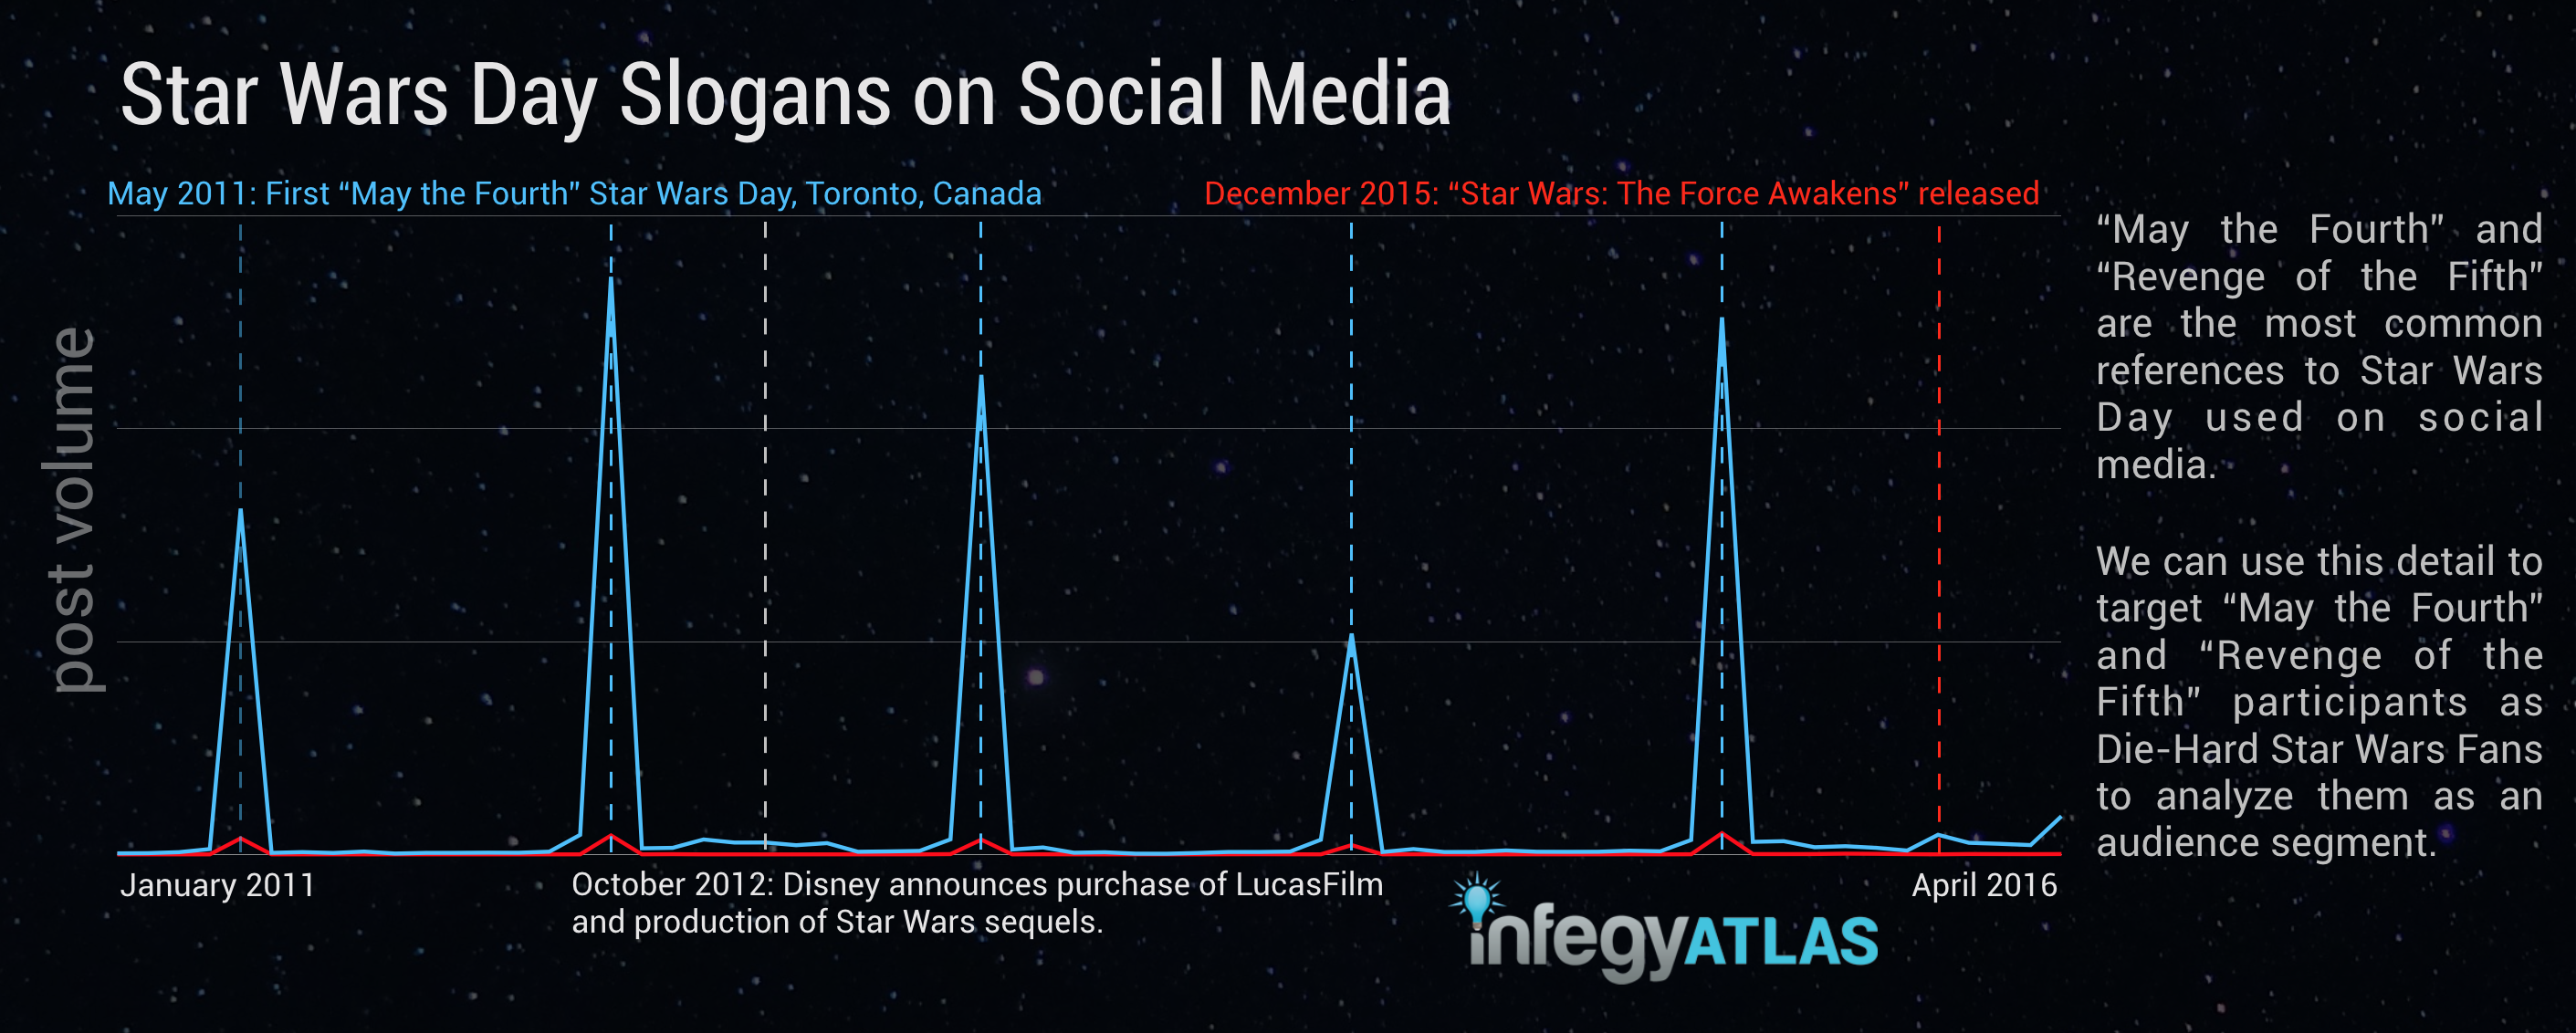 star-wars-day-slogans-on-social-media.png